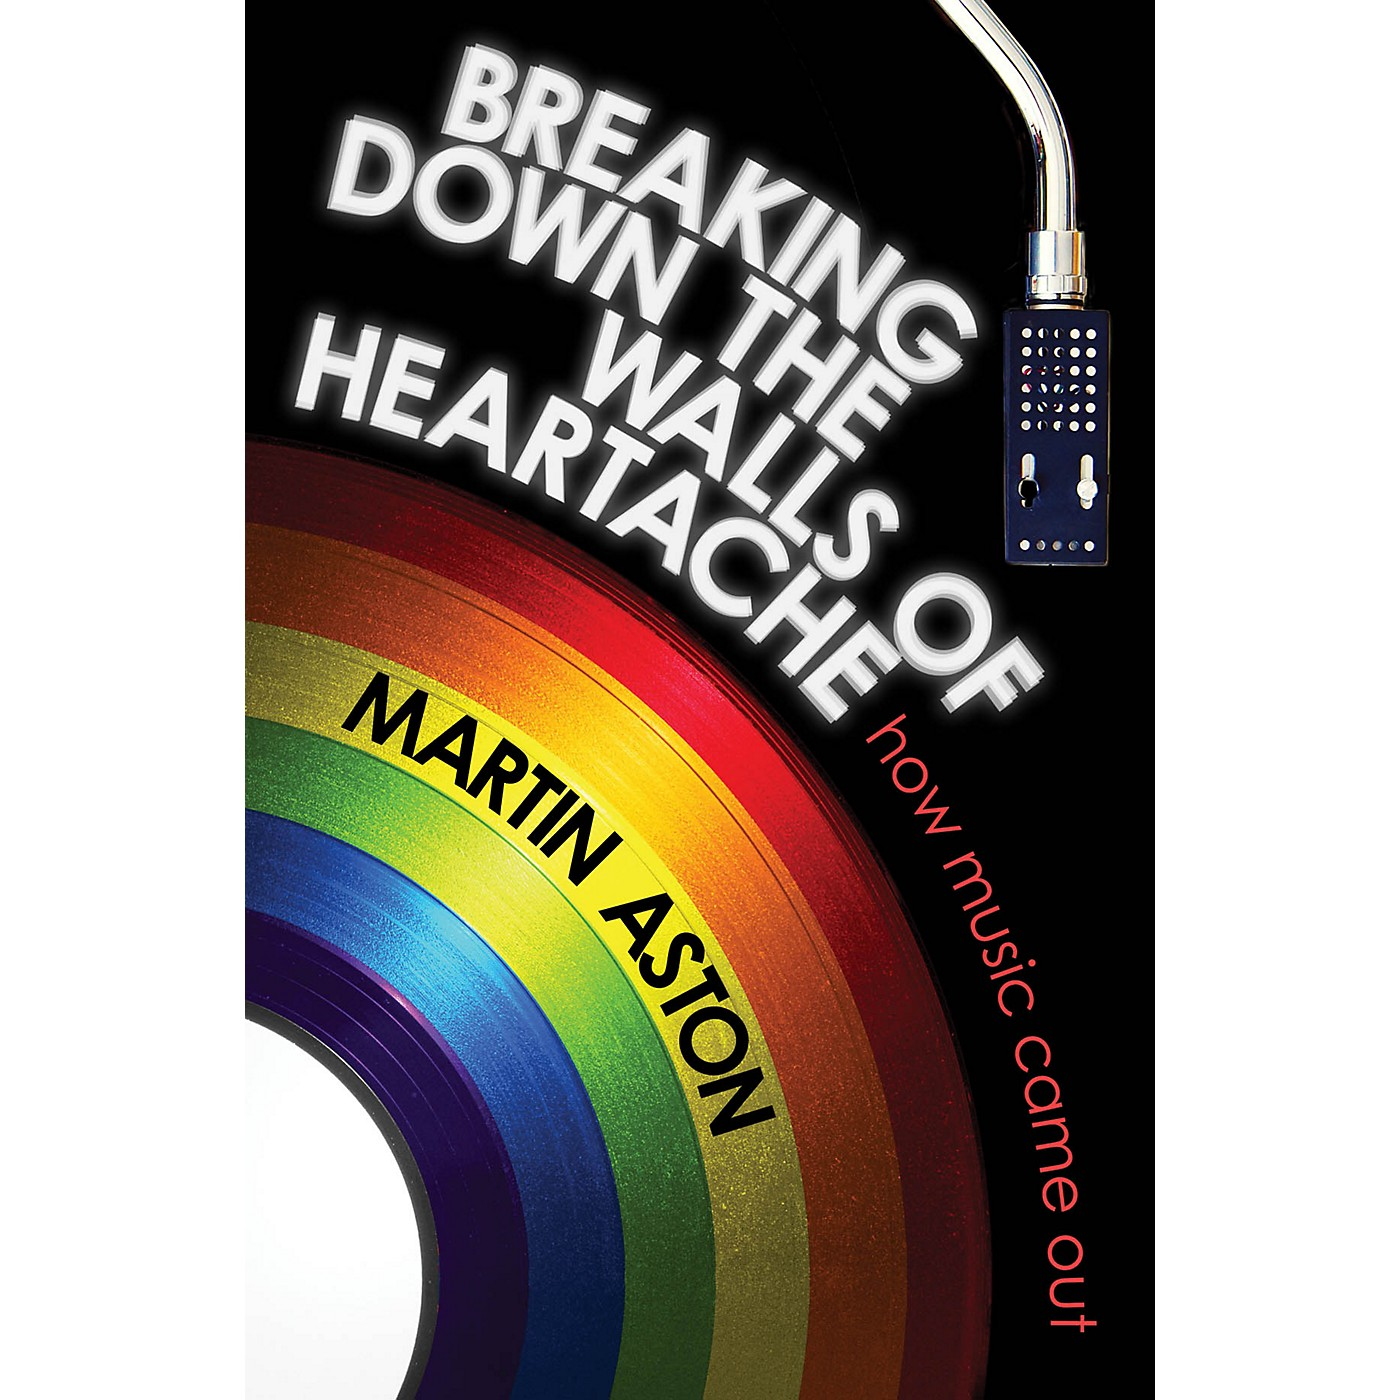 Backbeat Books Breaking Down the Walls of Heartache (How Music Came Out) Book Series Hardcover Written by Martin Aston thumbnail